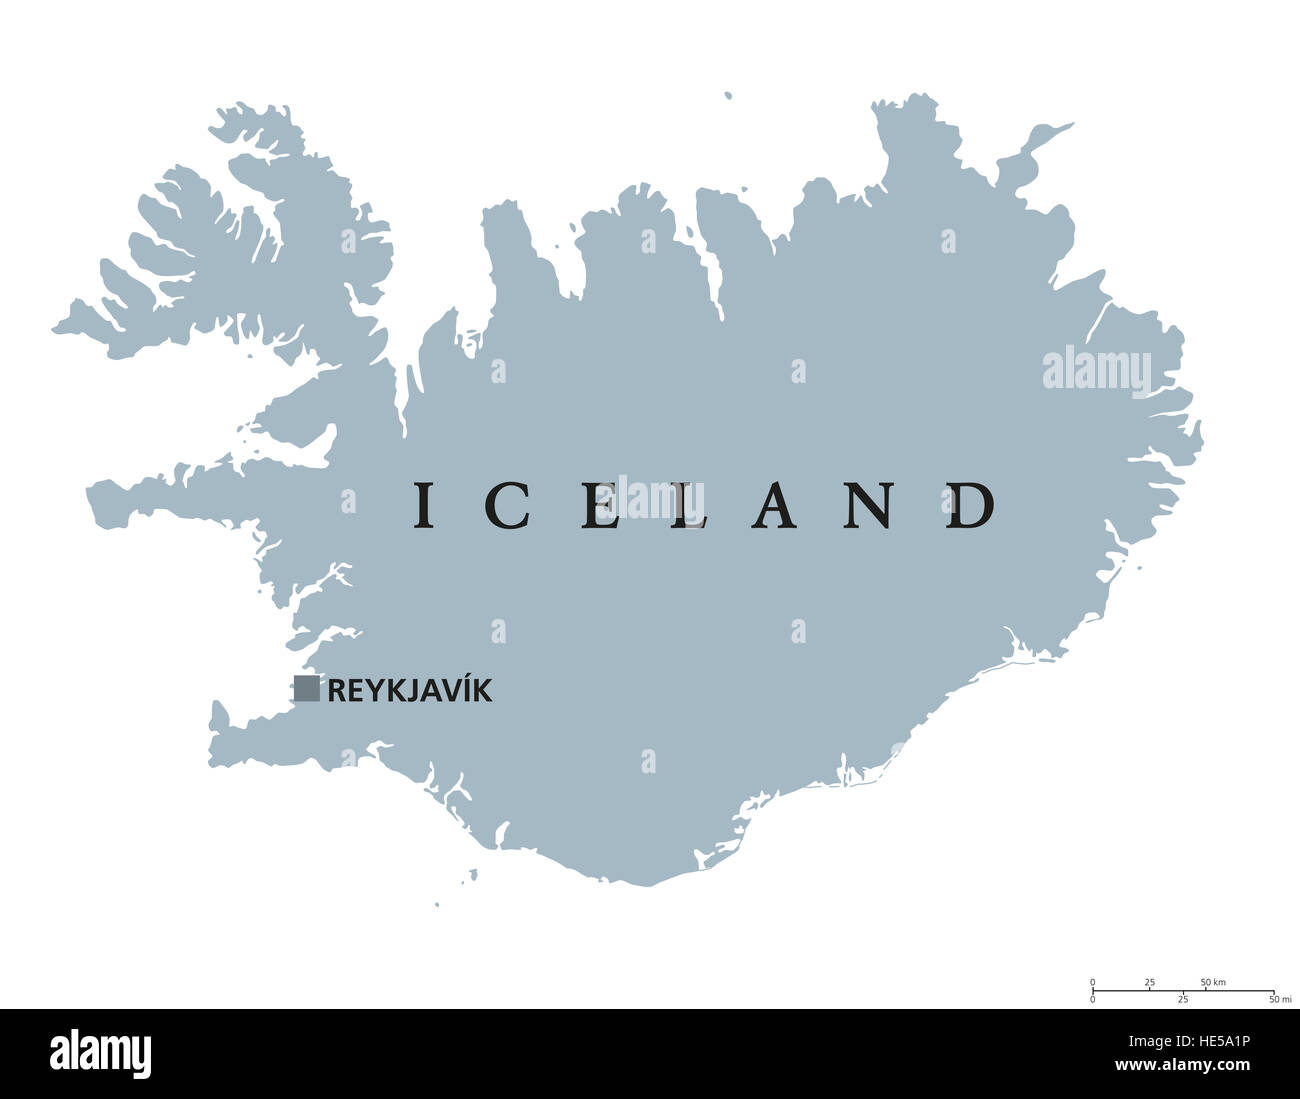 Iceland political map with capital Reykjavik Republic and Nordic